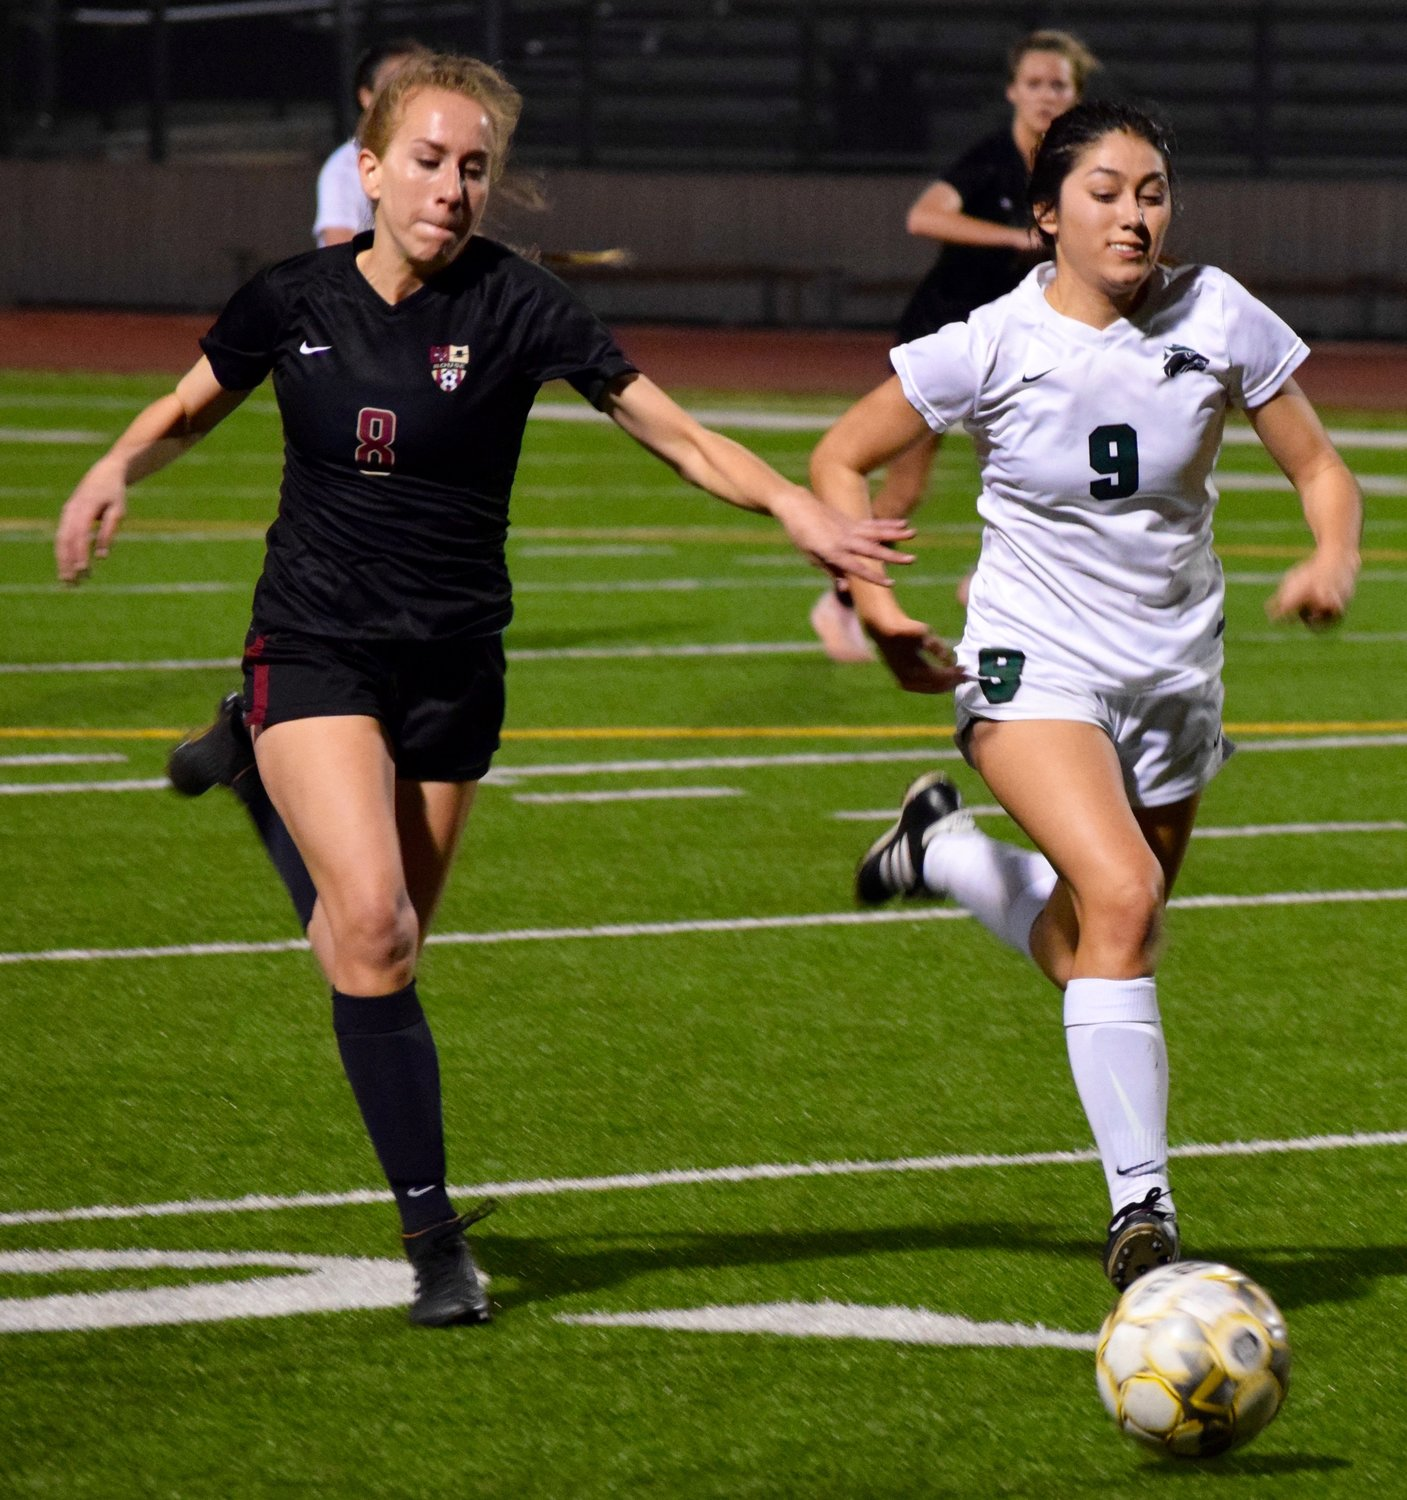 Rouse's Emma Metcalf, left, and Cedar Park's Maria Rico run for the ball Friday night at Rouse High School. The Lady Timberwolves beat the Lady Raiders 4-1.